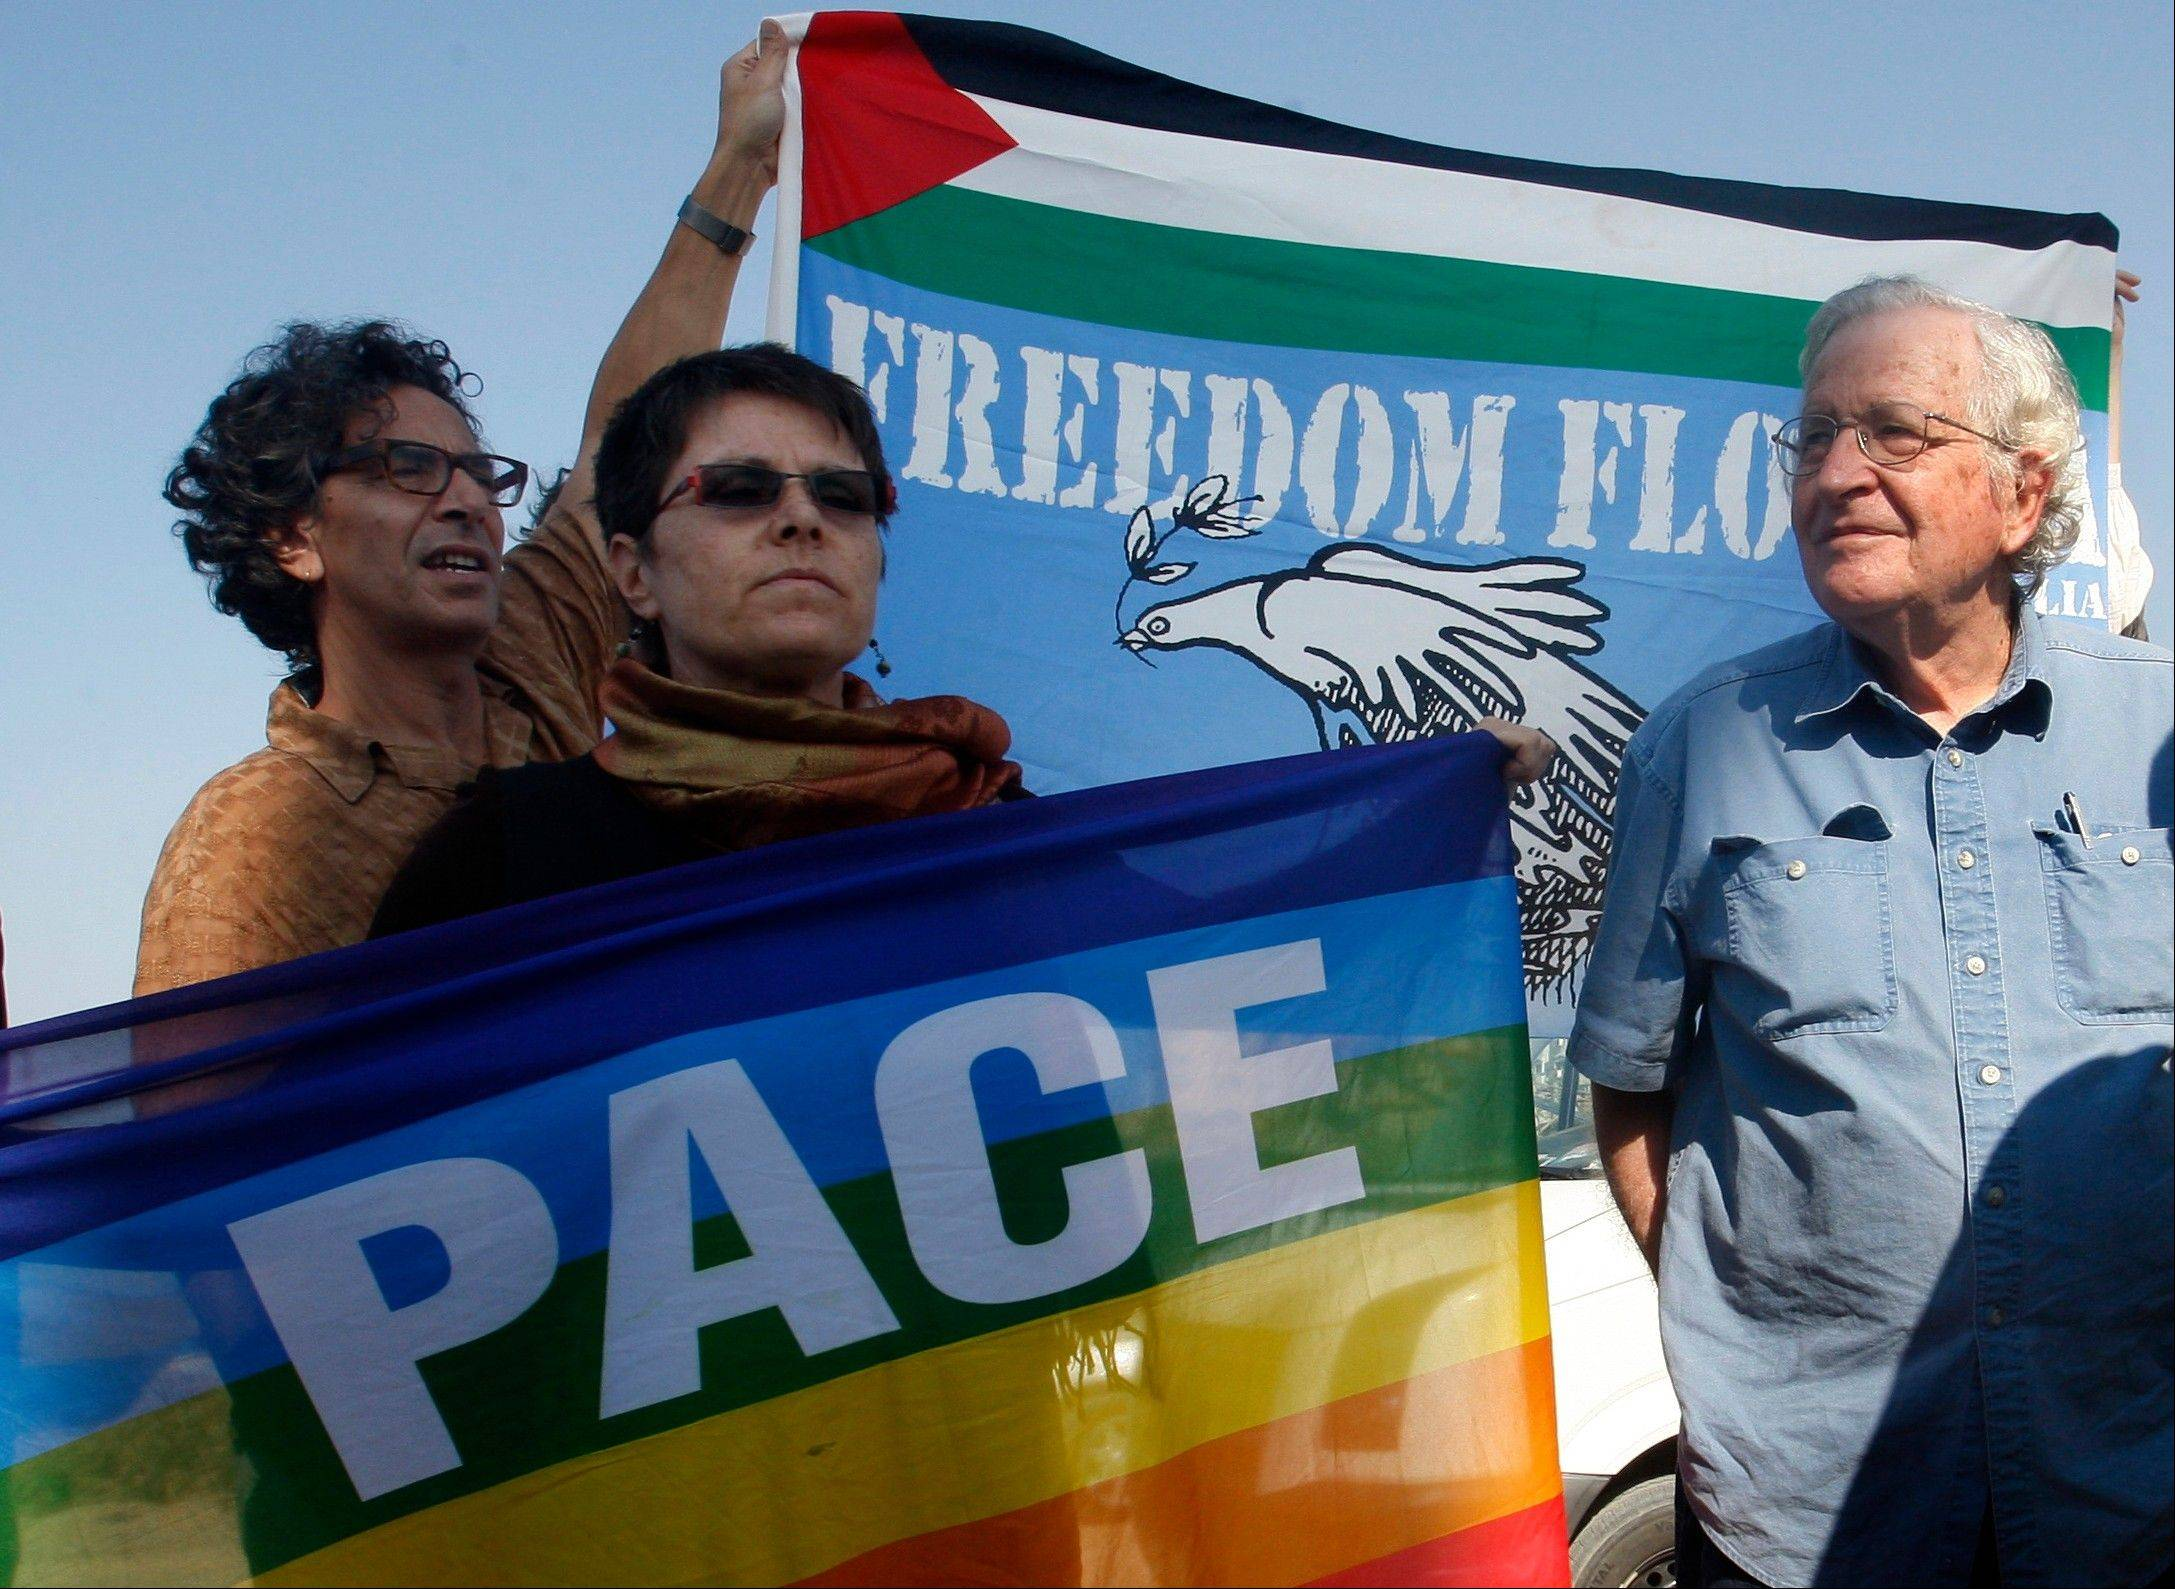 Jewish-American scholar and activist Noam Chomsky, right, stands during a press conference Saturday to support the Gaza-bound flotilla in the port of Gaza City.